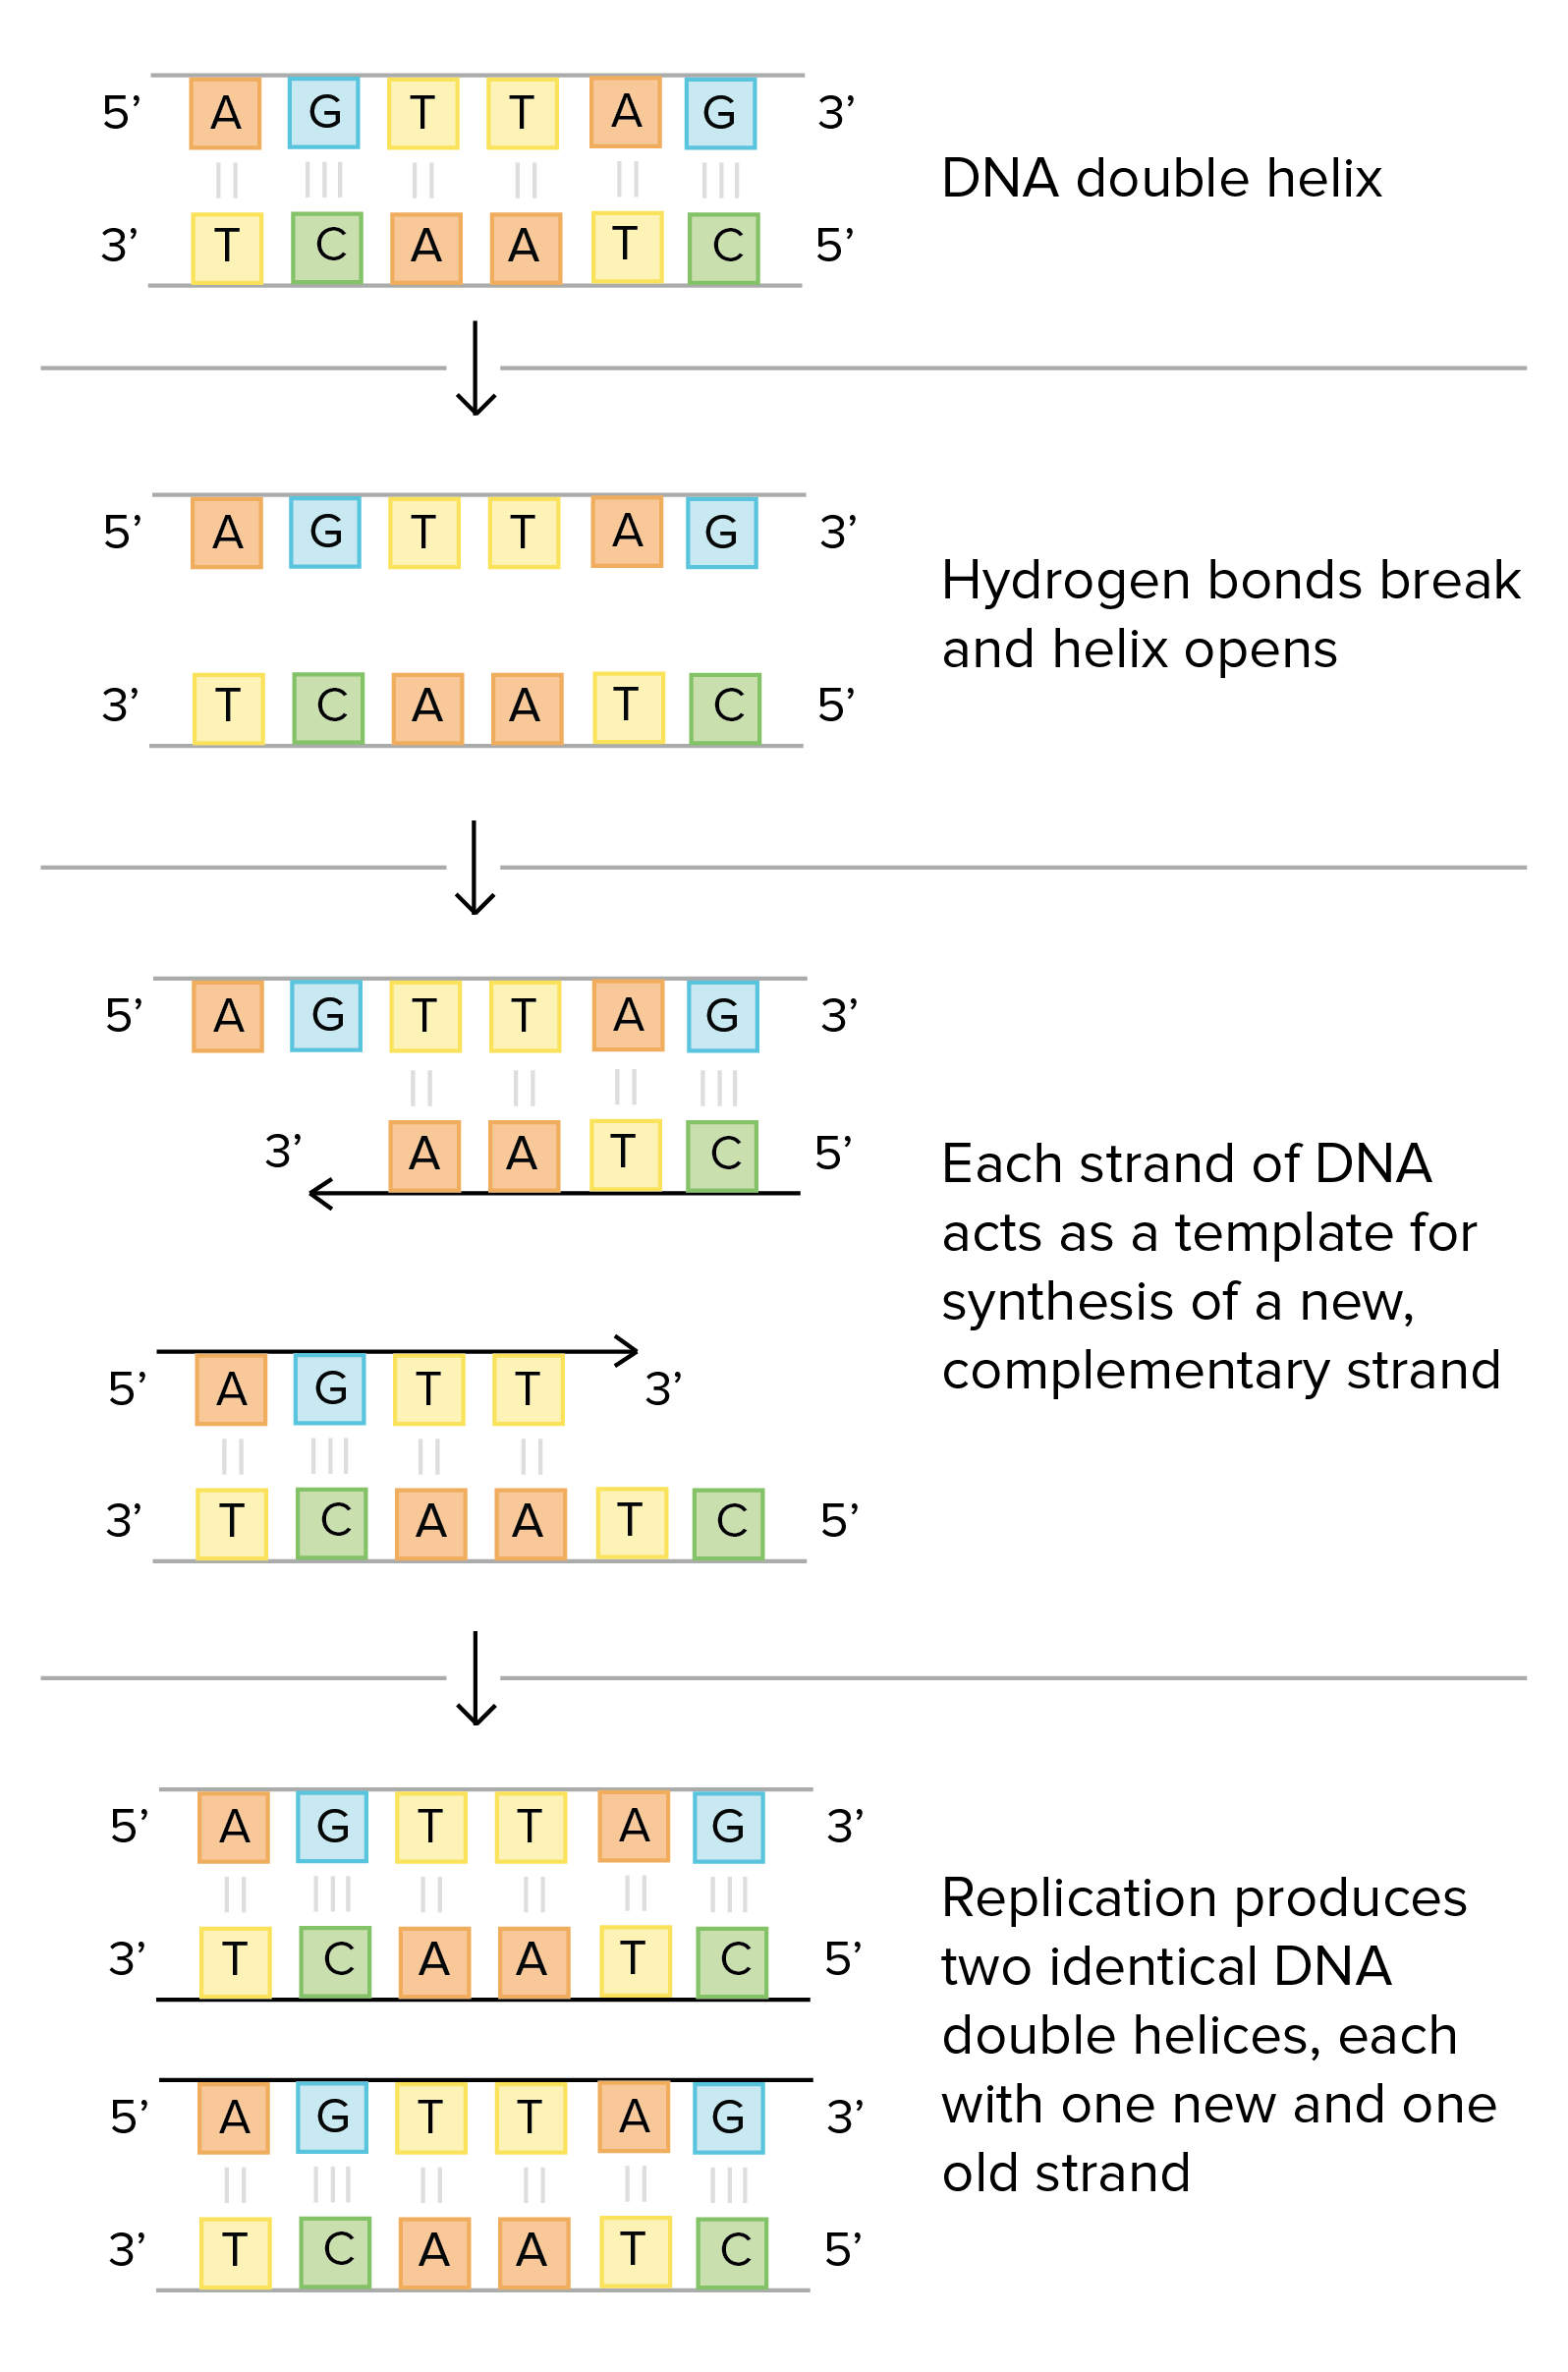 Mode Of Dna Replication Meselson Stahl Experiment Article Khan There Is An Incorrect Term In The Diagram Explain Which This Academy